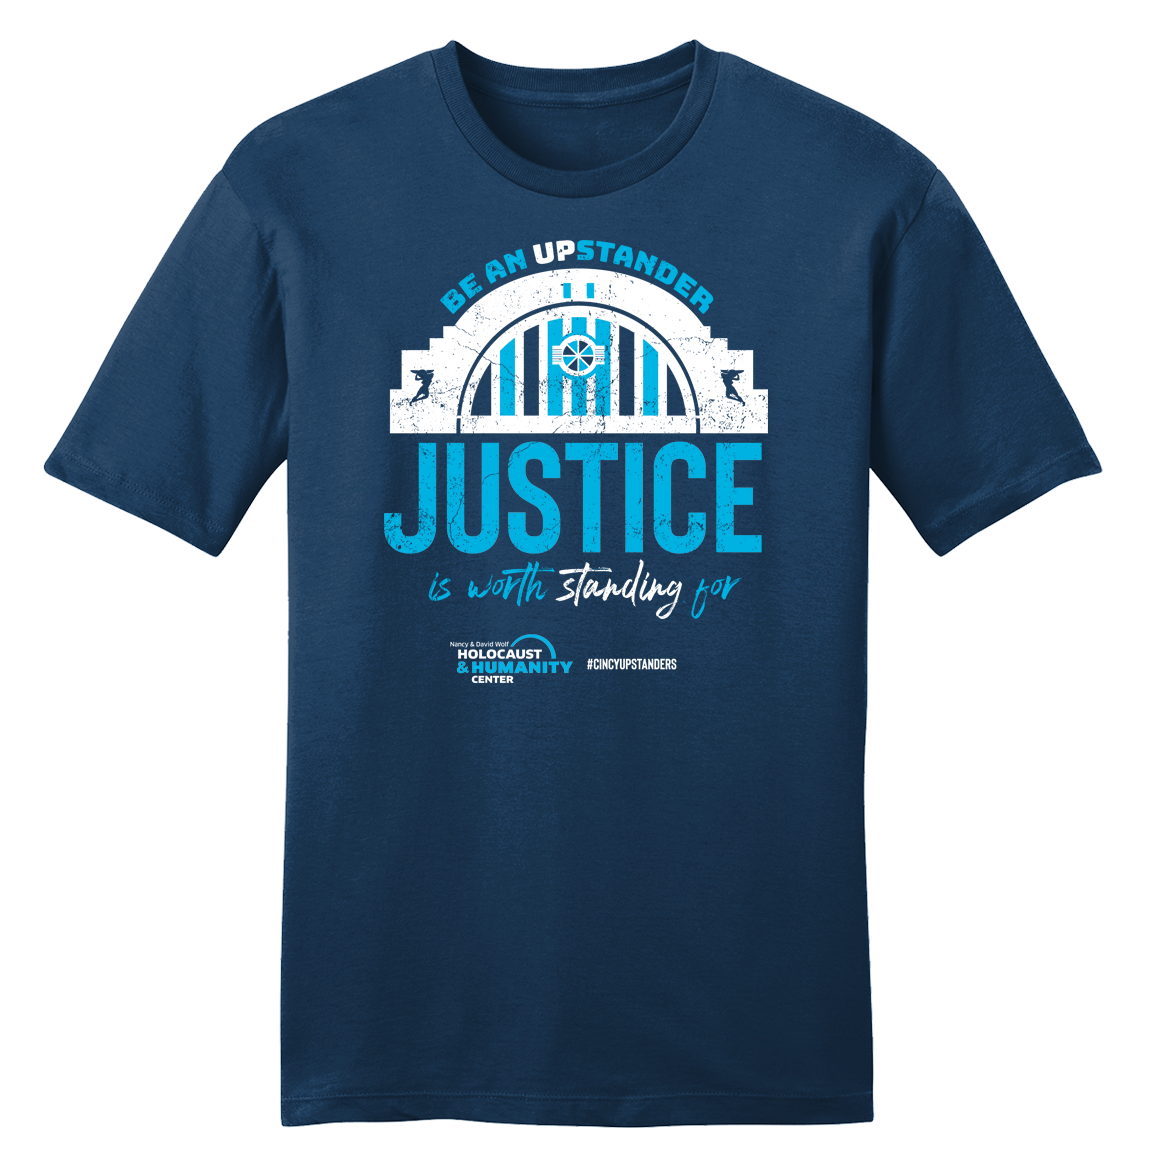 Justice #CincyUpstanders - Cincy Shirts